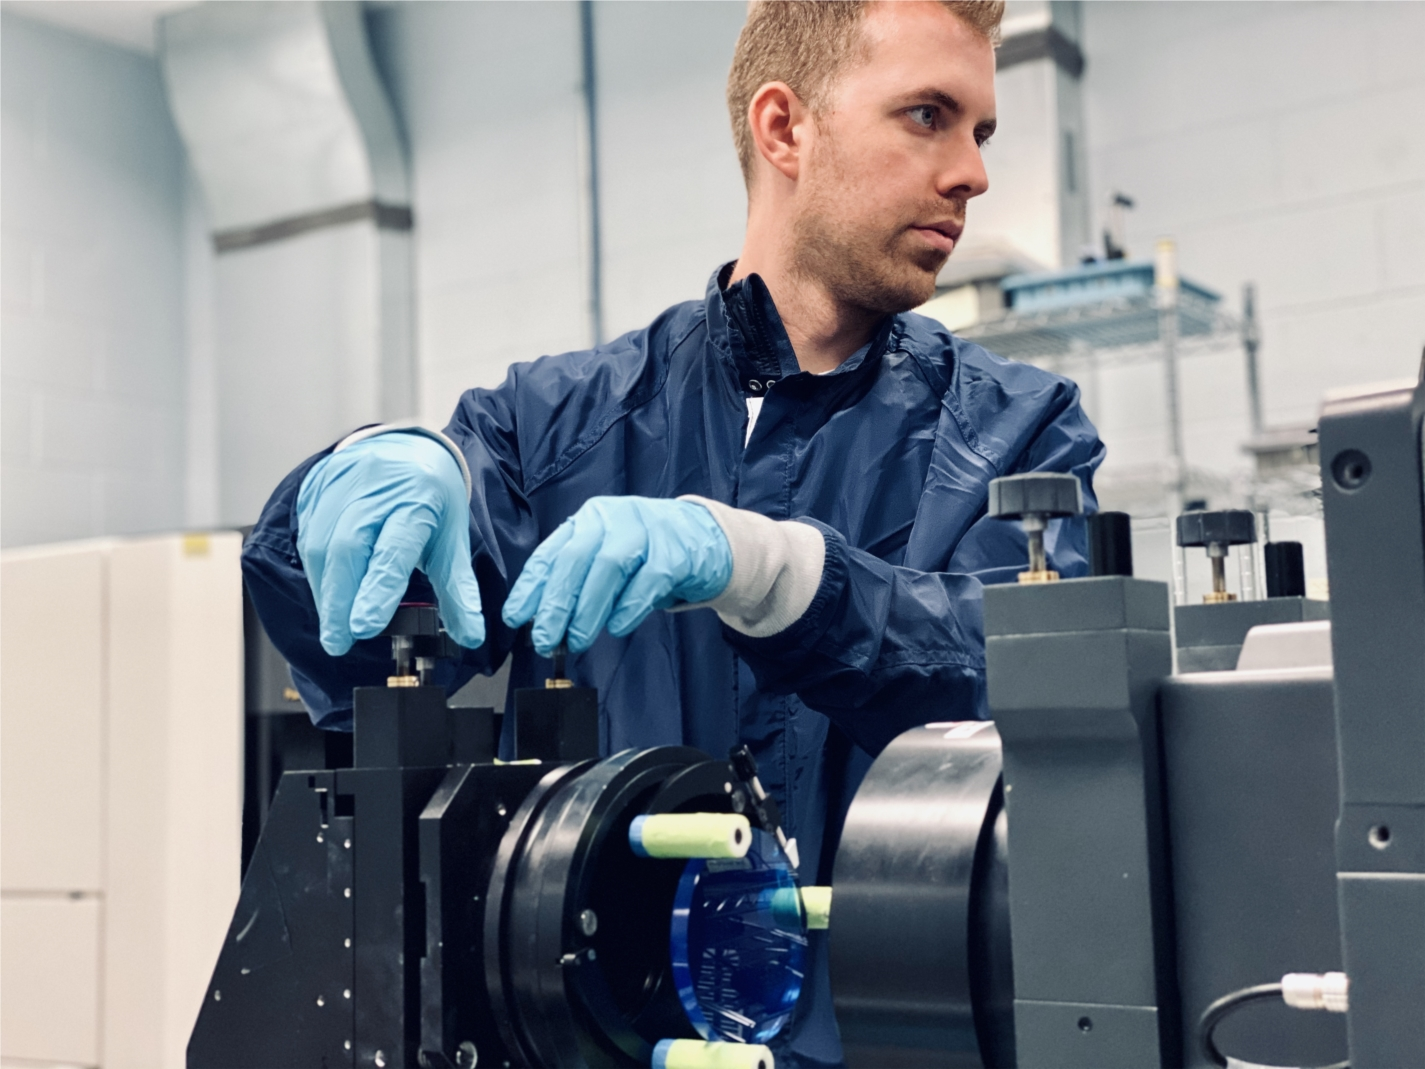 Measuring high-precision optics is a key component of optics manufacturing, as pictured here in one of Optimax's Metrology labs.